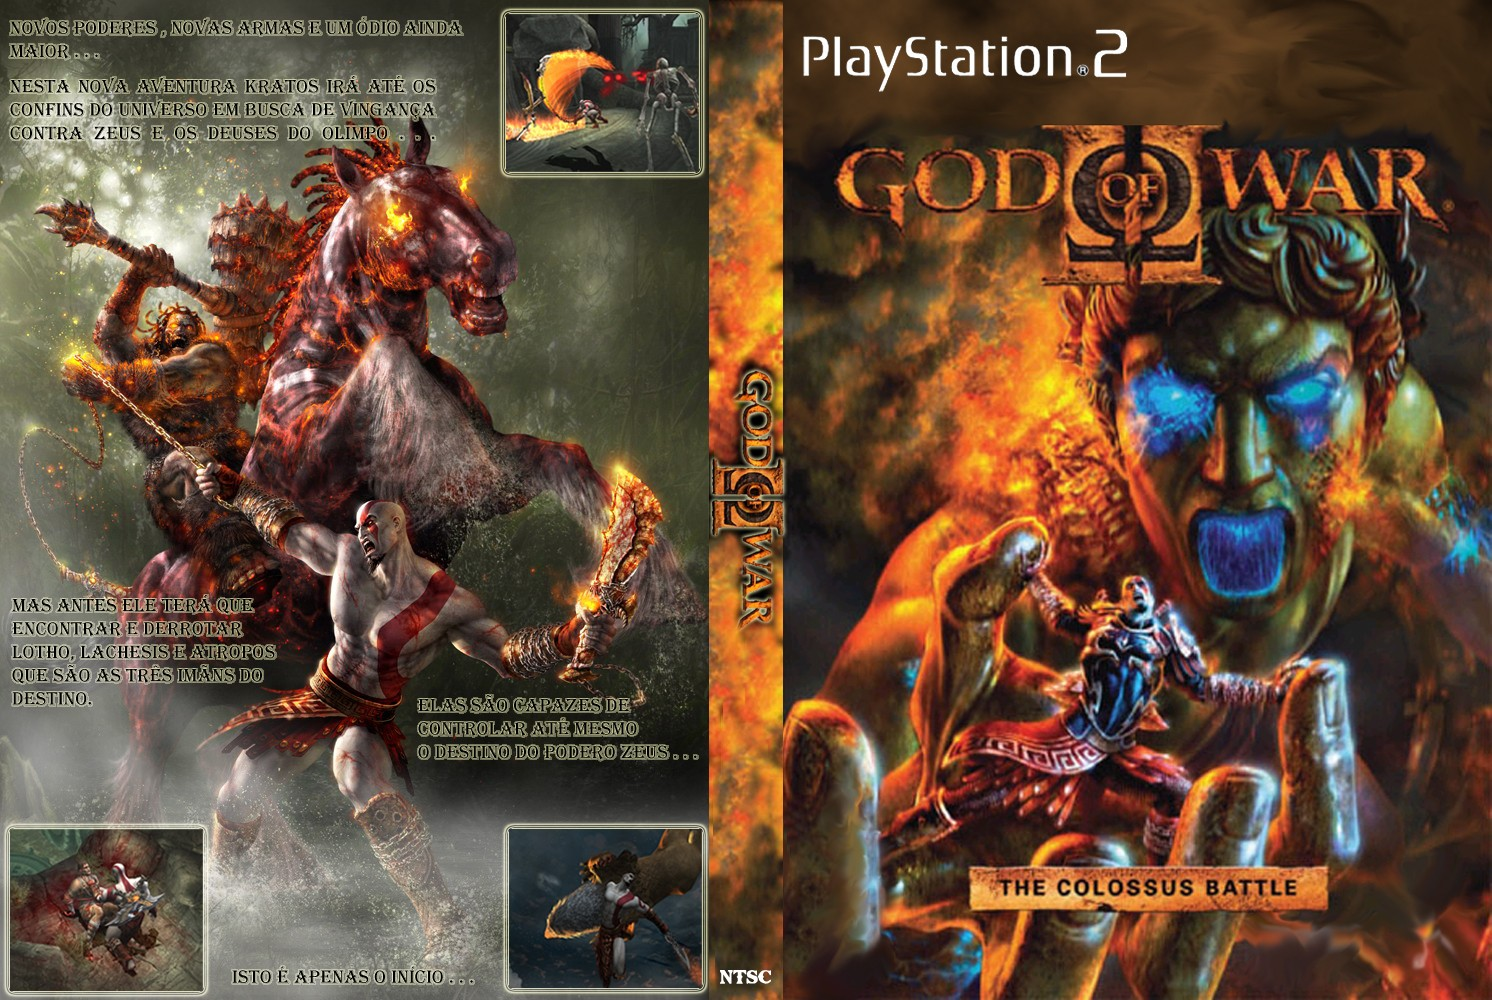 PS2) GOD OF WAR 2